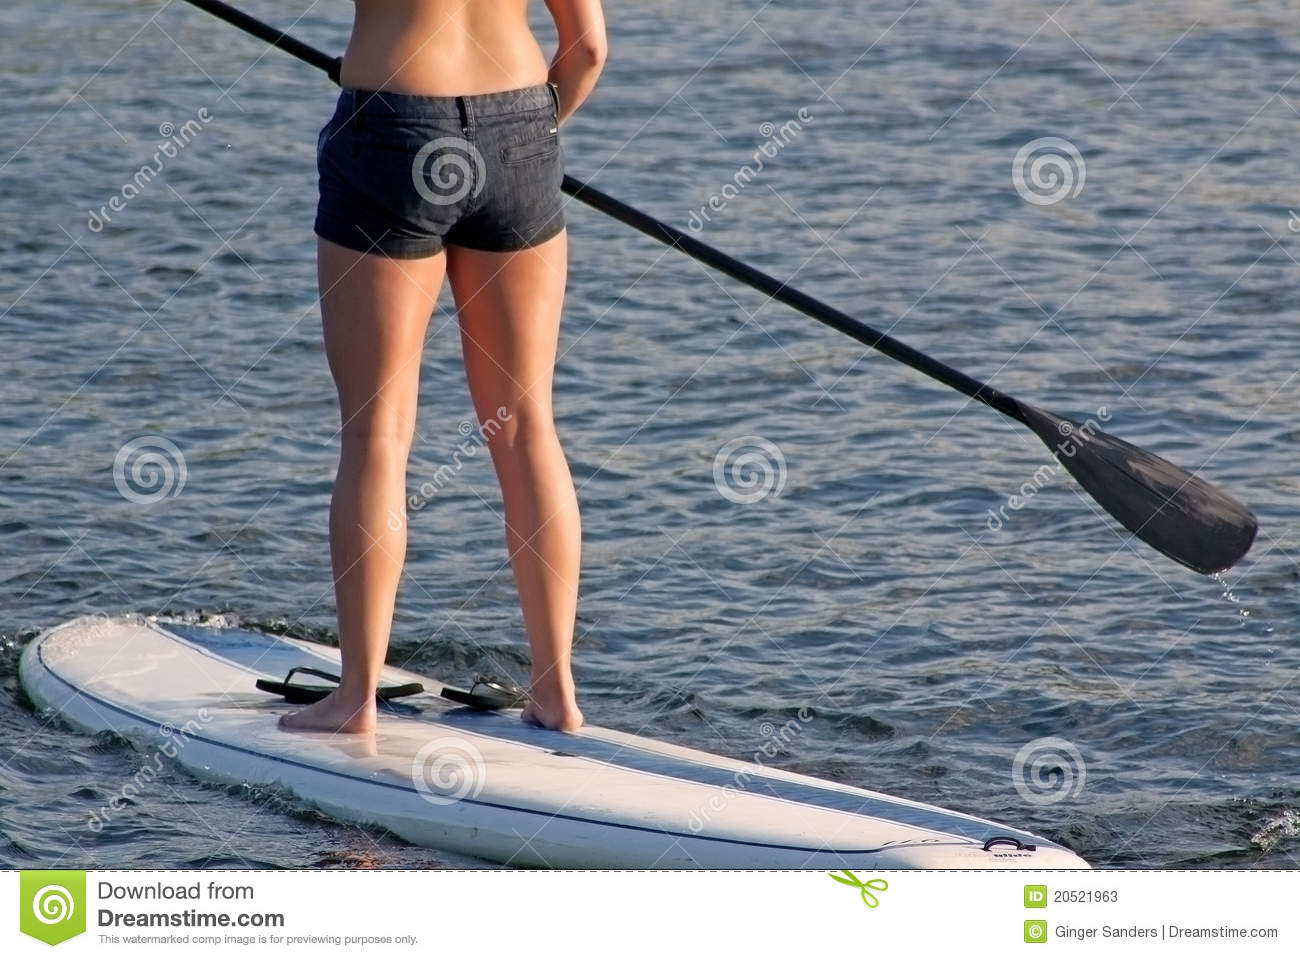 Suntanned Stand Up Paddle Boarder Woman